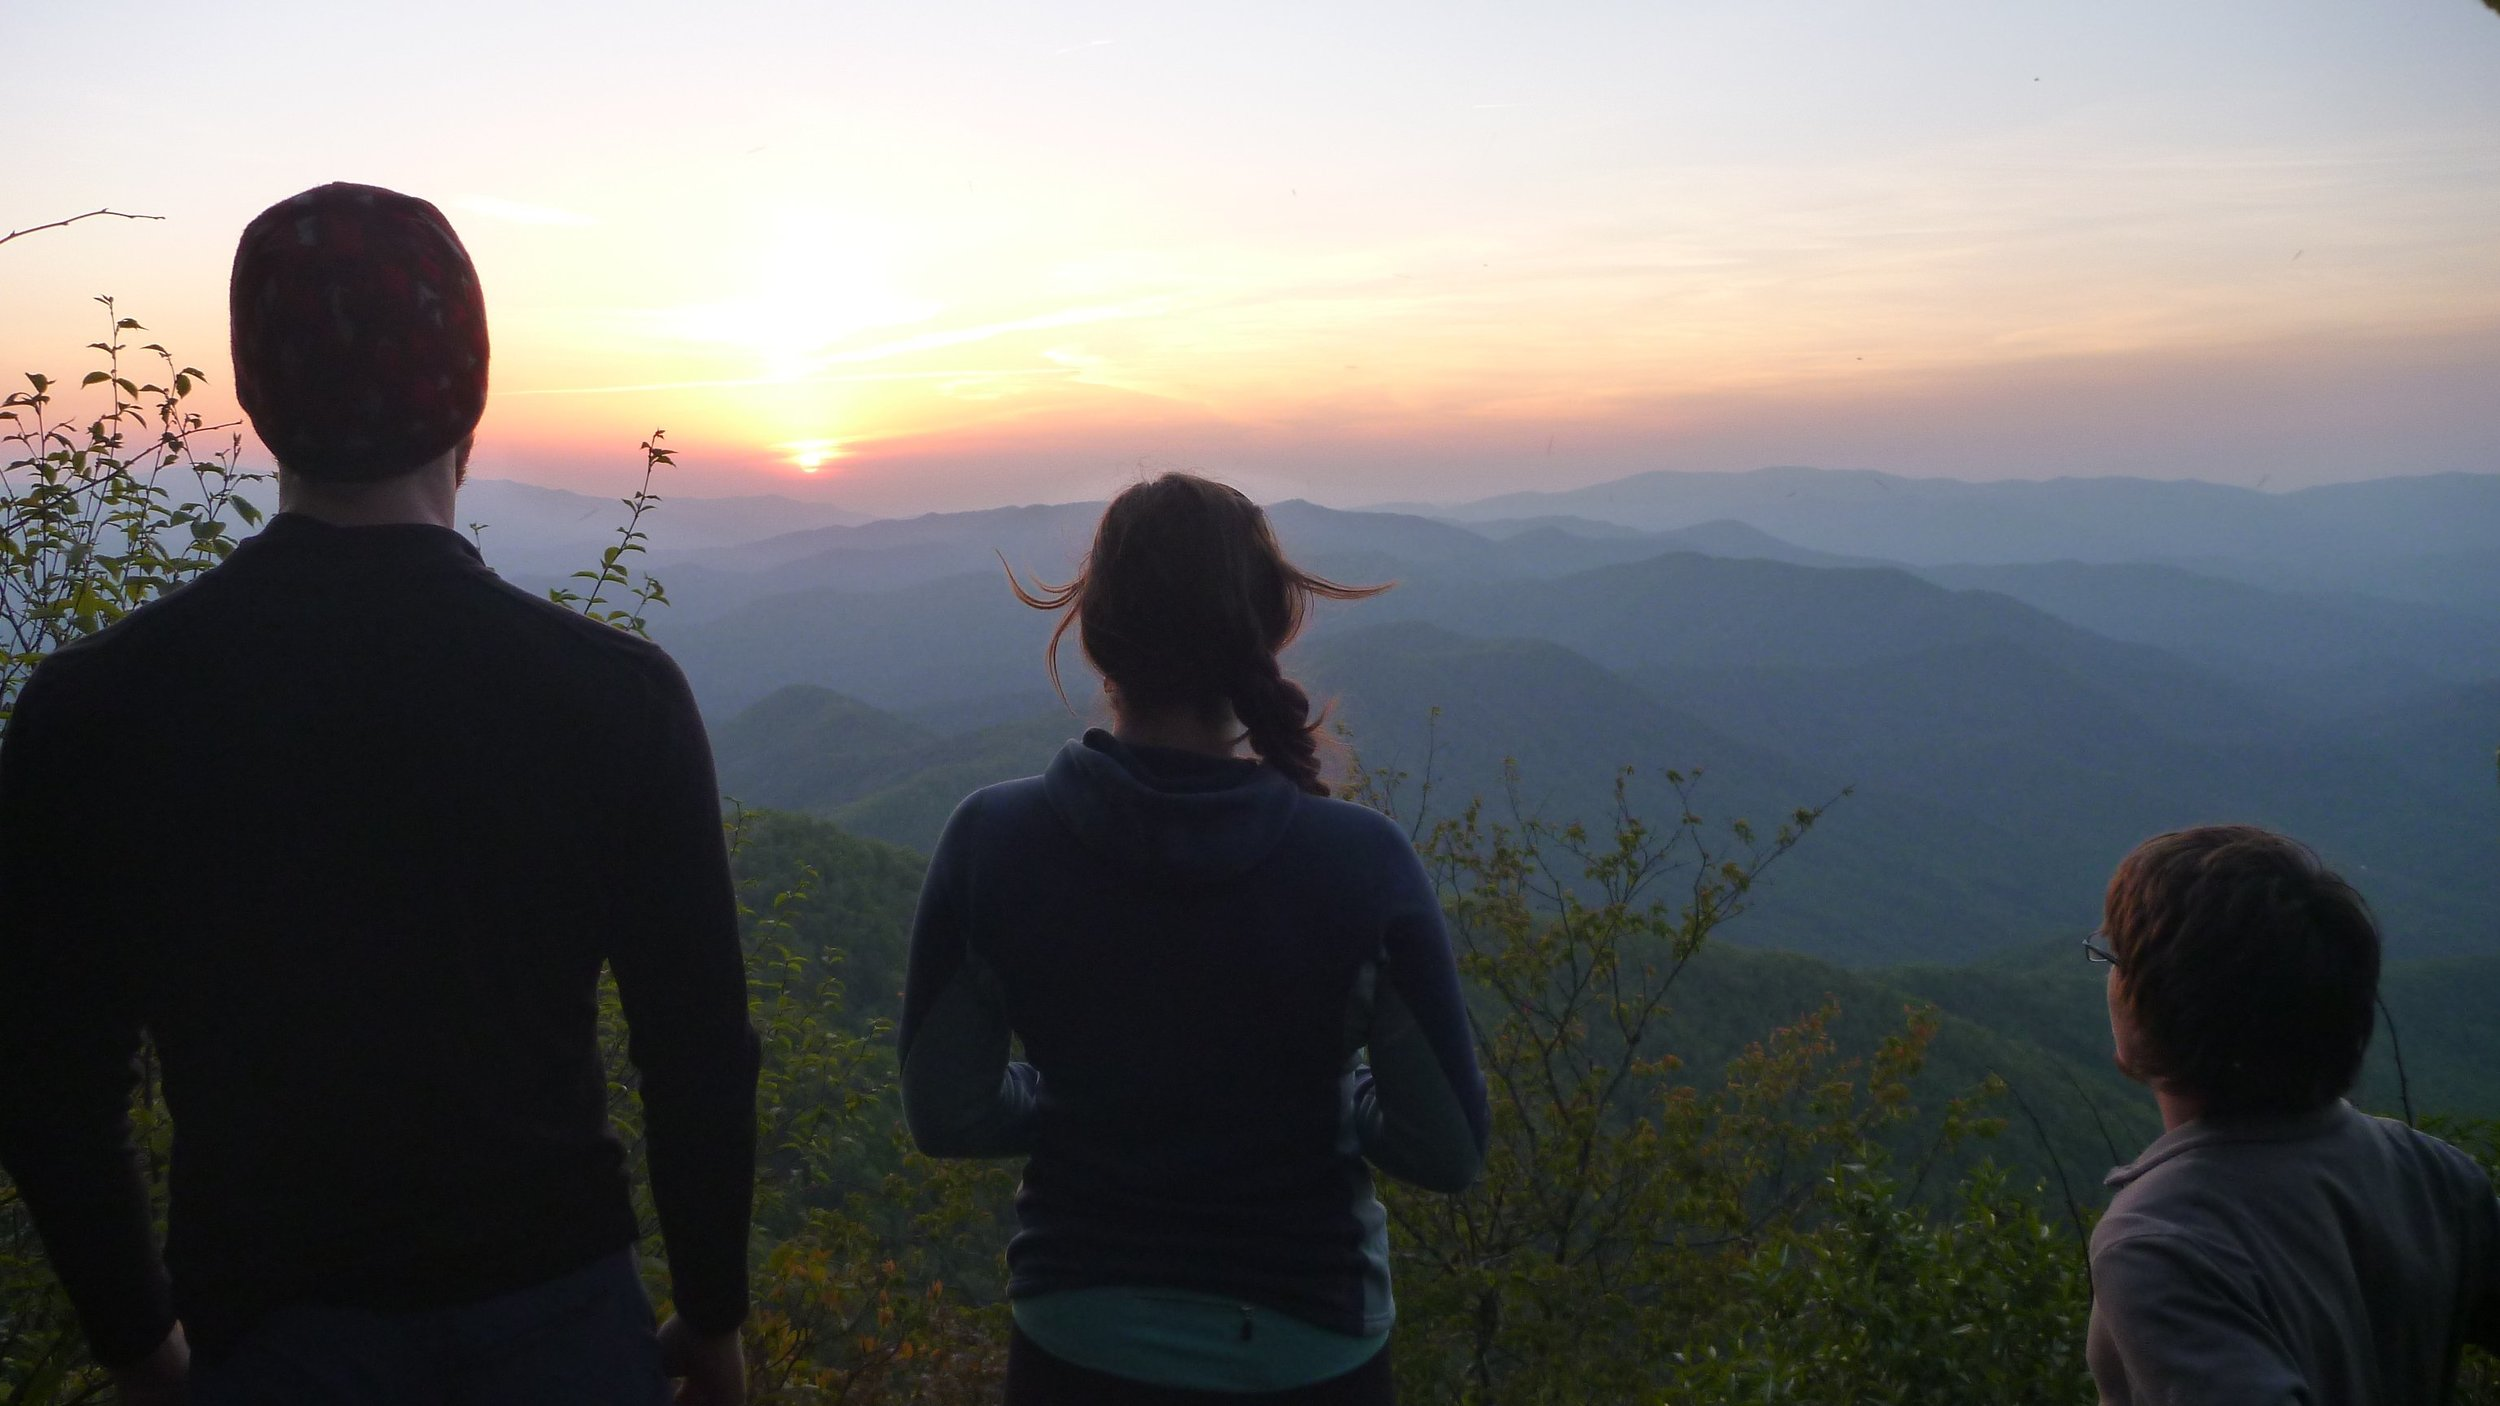 Blue Indian, Voldemort and Droid (formerly Roadblock) watch the sunset from Cheoah Bald.